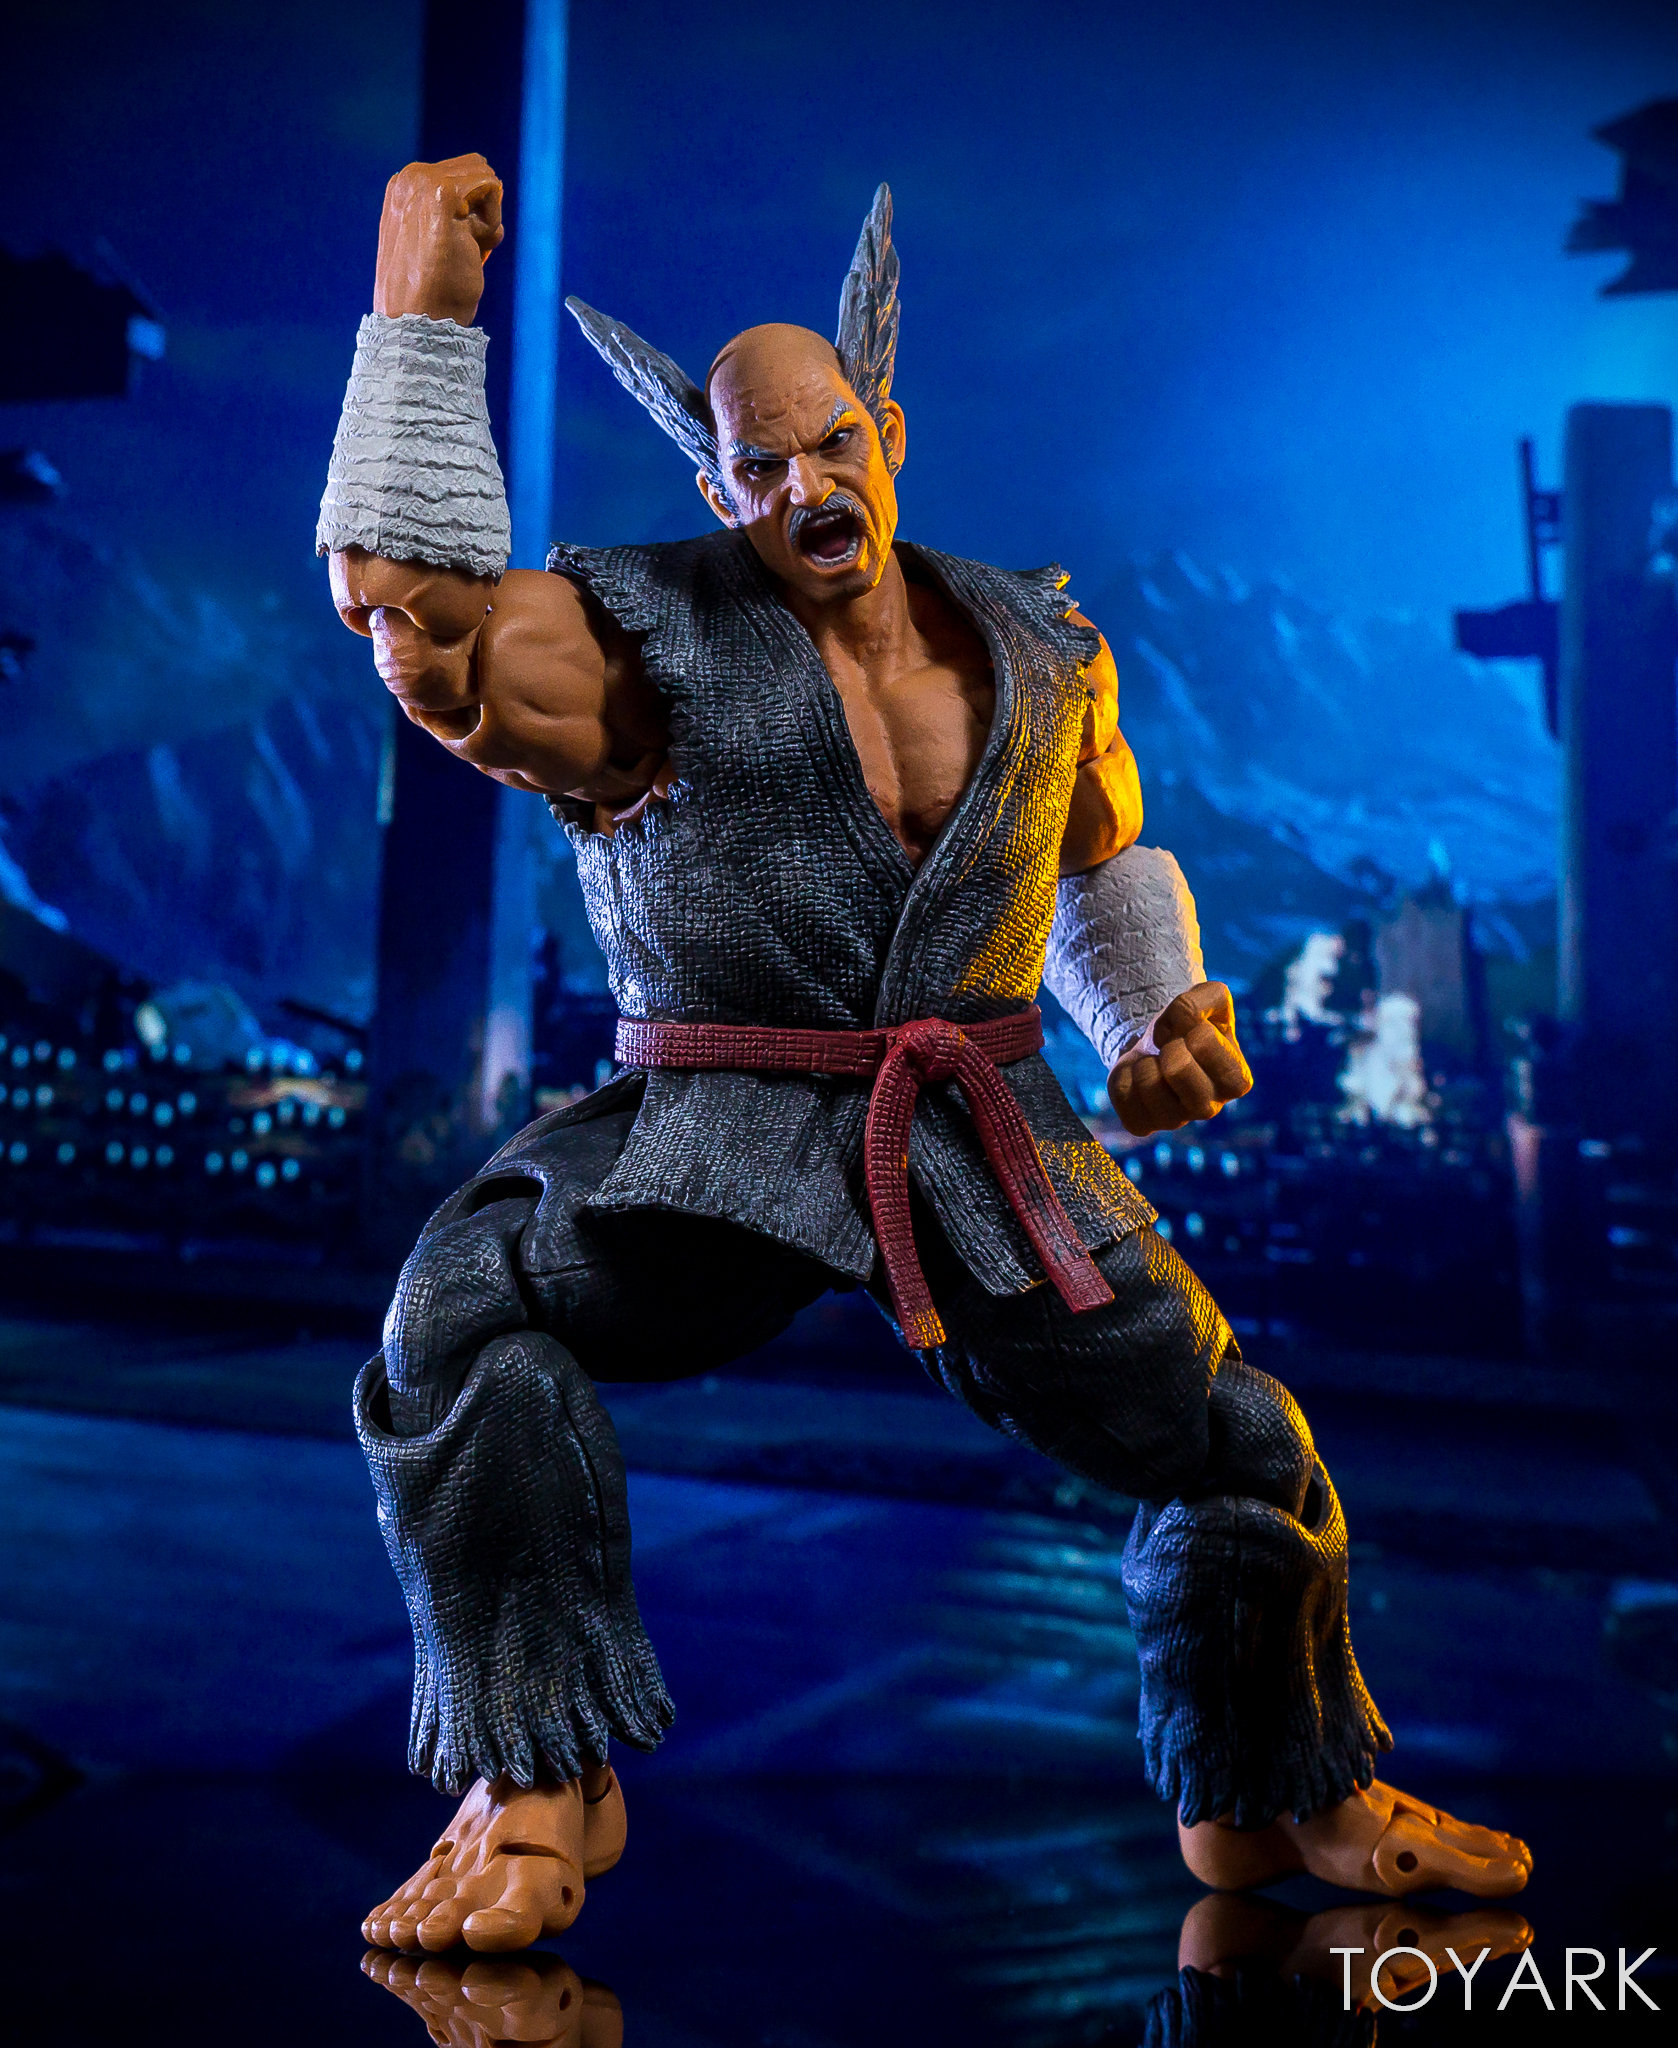 https://news.toyark.com/wp-content/uploads/sites/4/2018/05/Storm-Heihachi-Figure-046.jpg